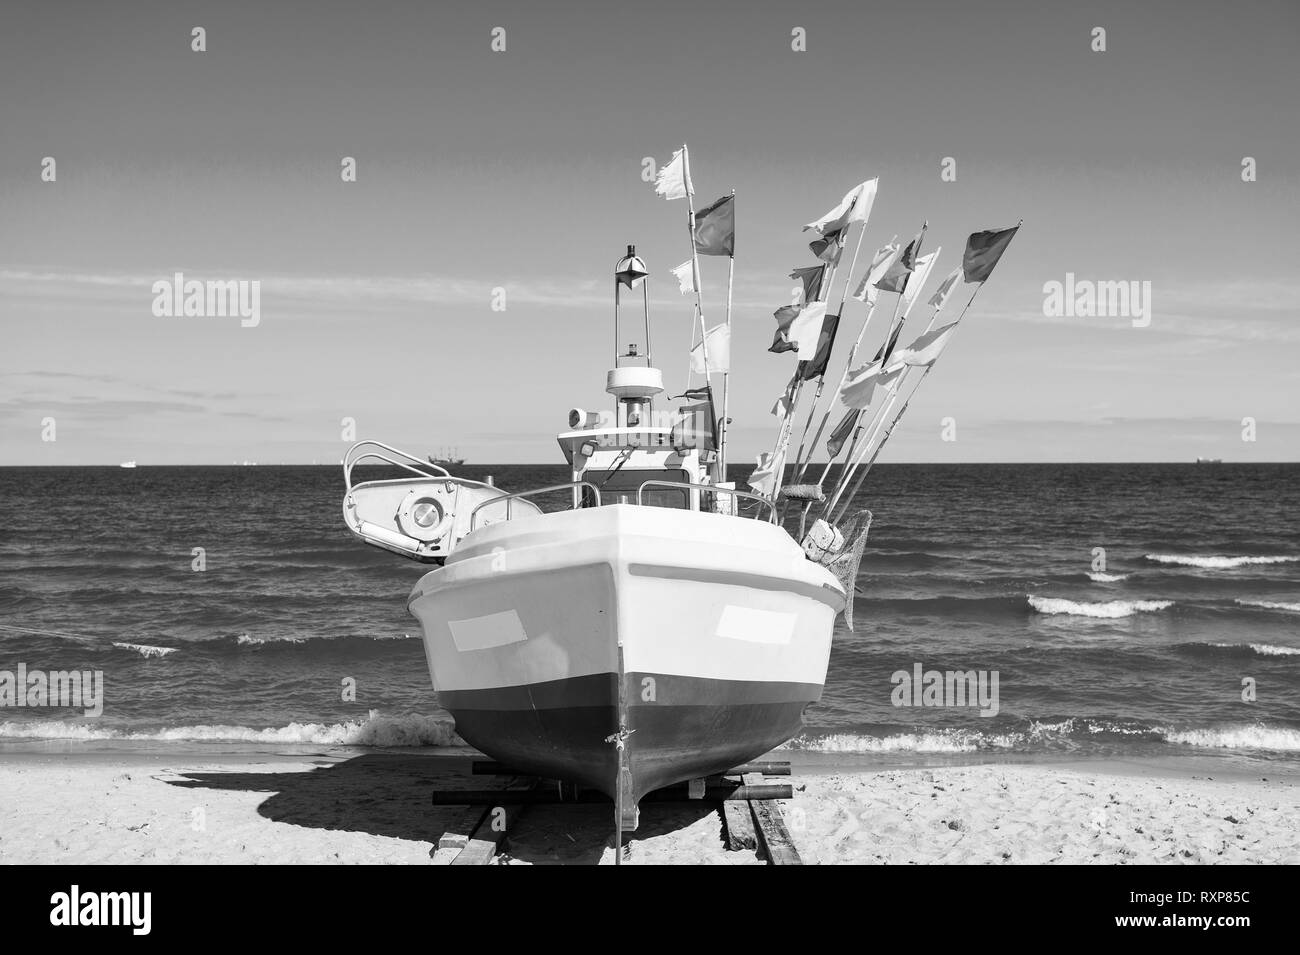 boat or ship modern marine vessel with colorful flags at moorage on beach on sunny day on blue sea and sky background - Stock Image